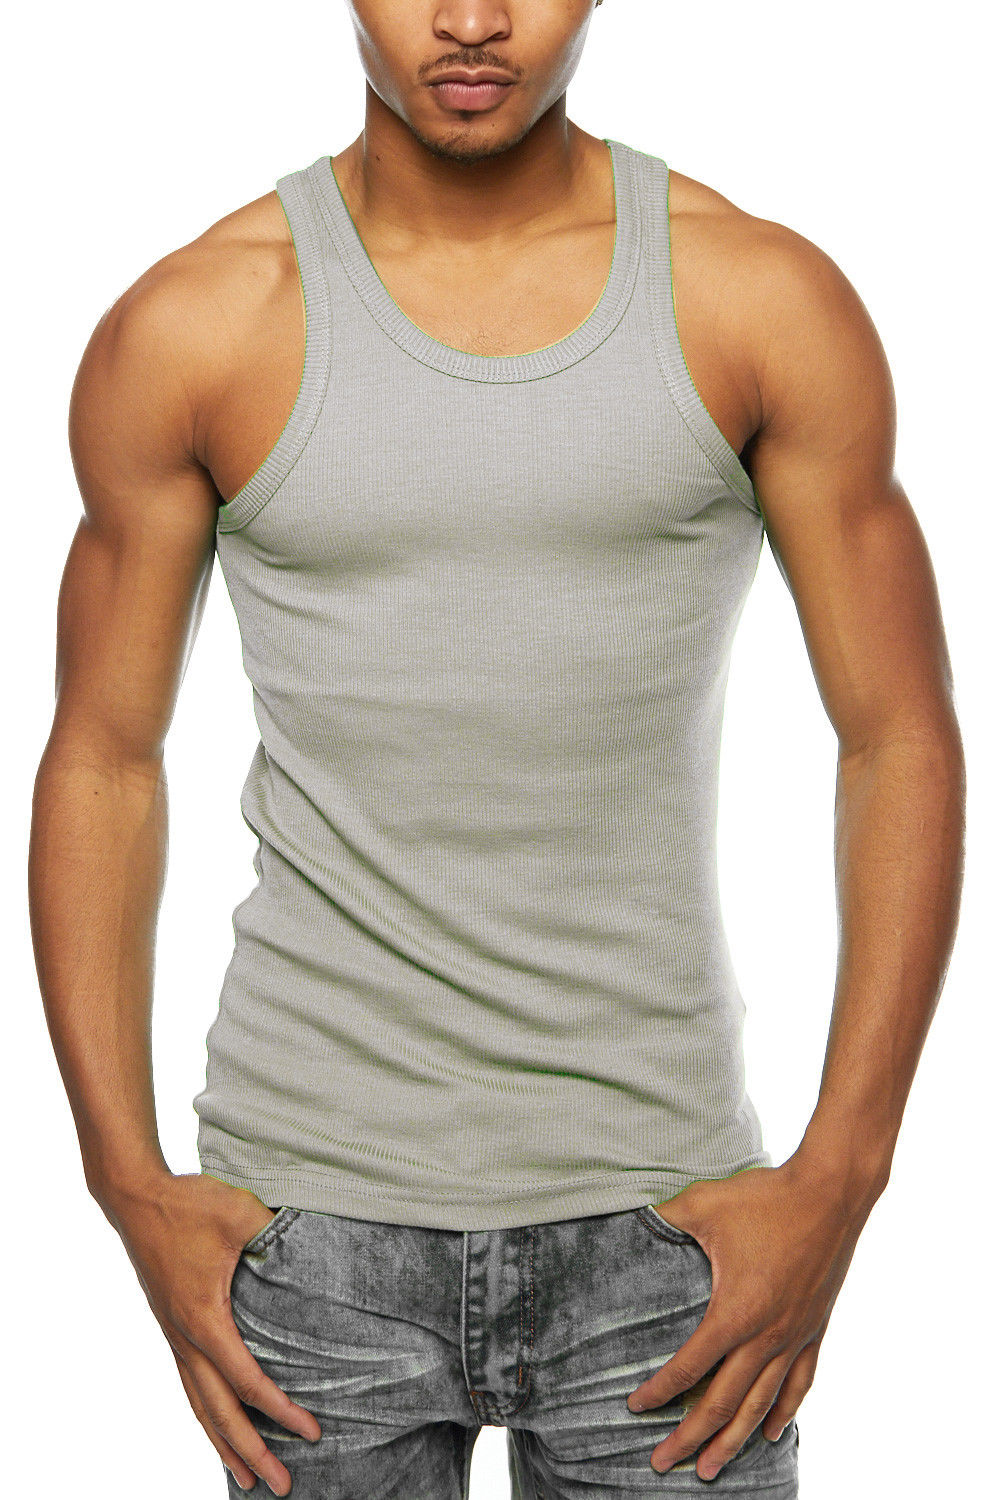 Mens 3 Pcs 100% Cotton A-Shirt Muscle TankWife Beater Ribbed Undershirt 388T-S-Black